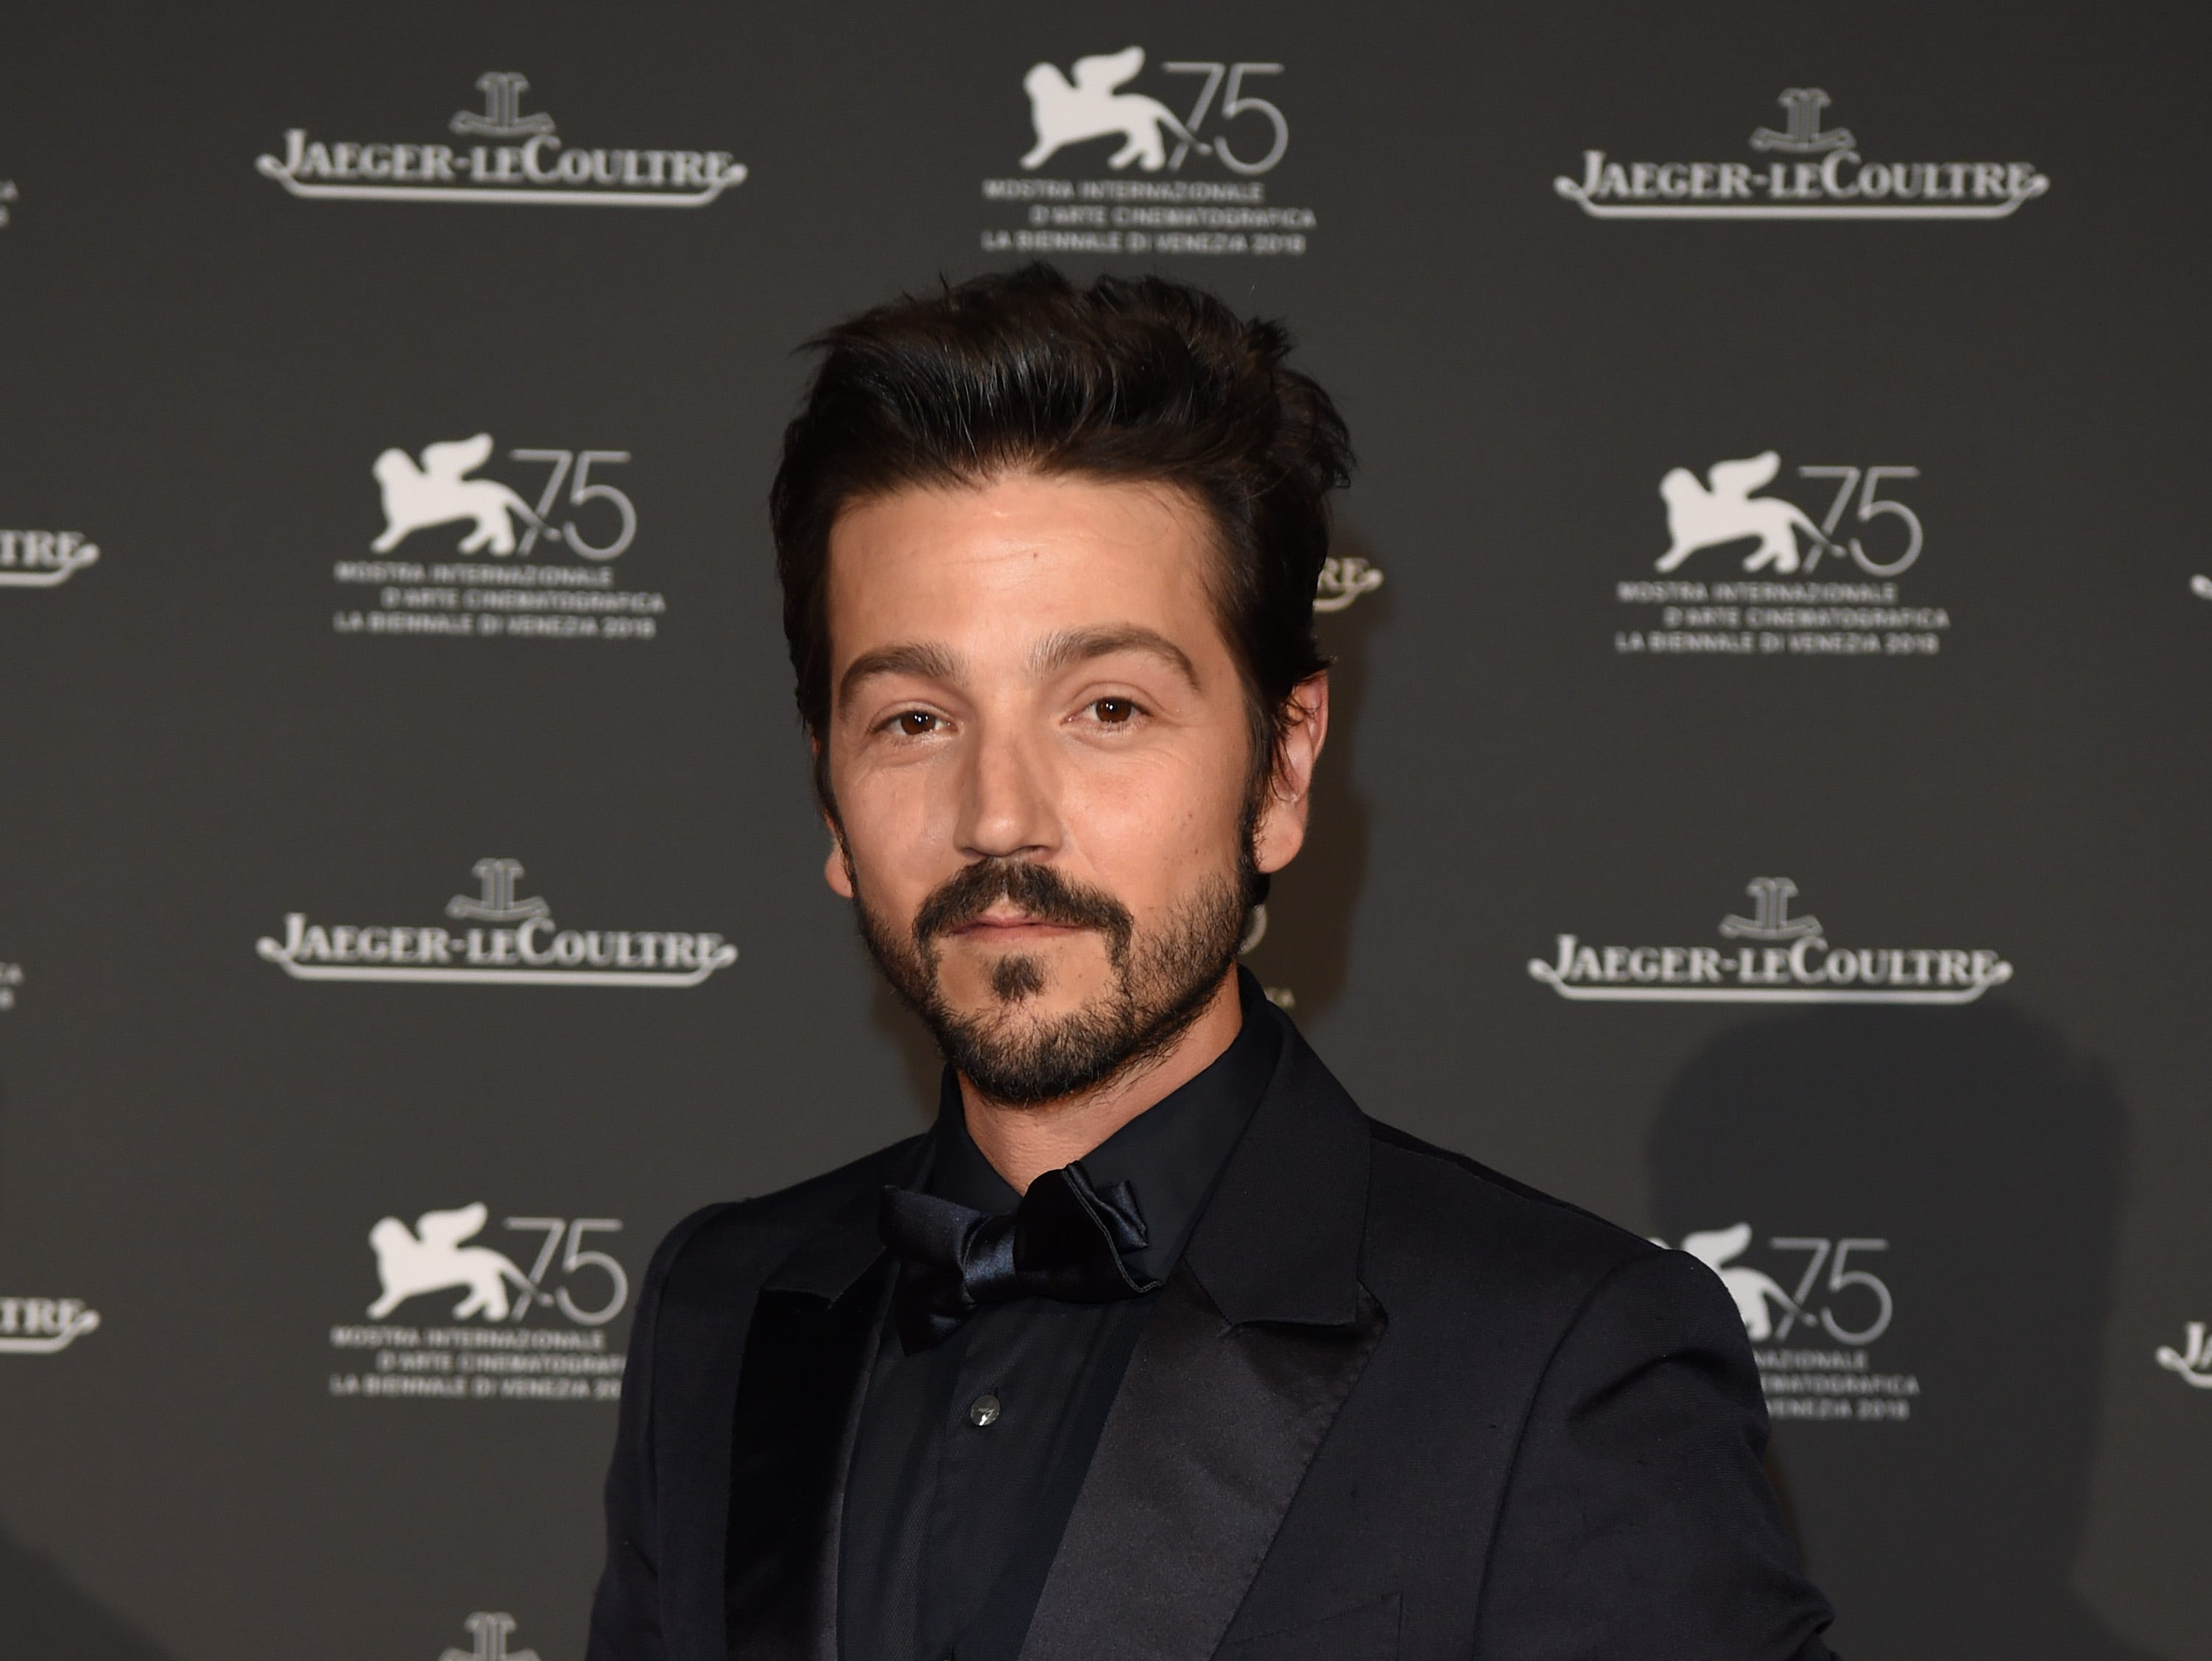 Diego Luna arrives for the Jaeger-LeCoultre Gala Dinner.